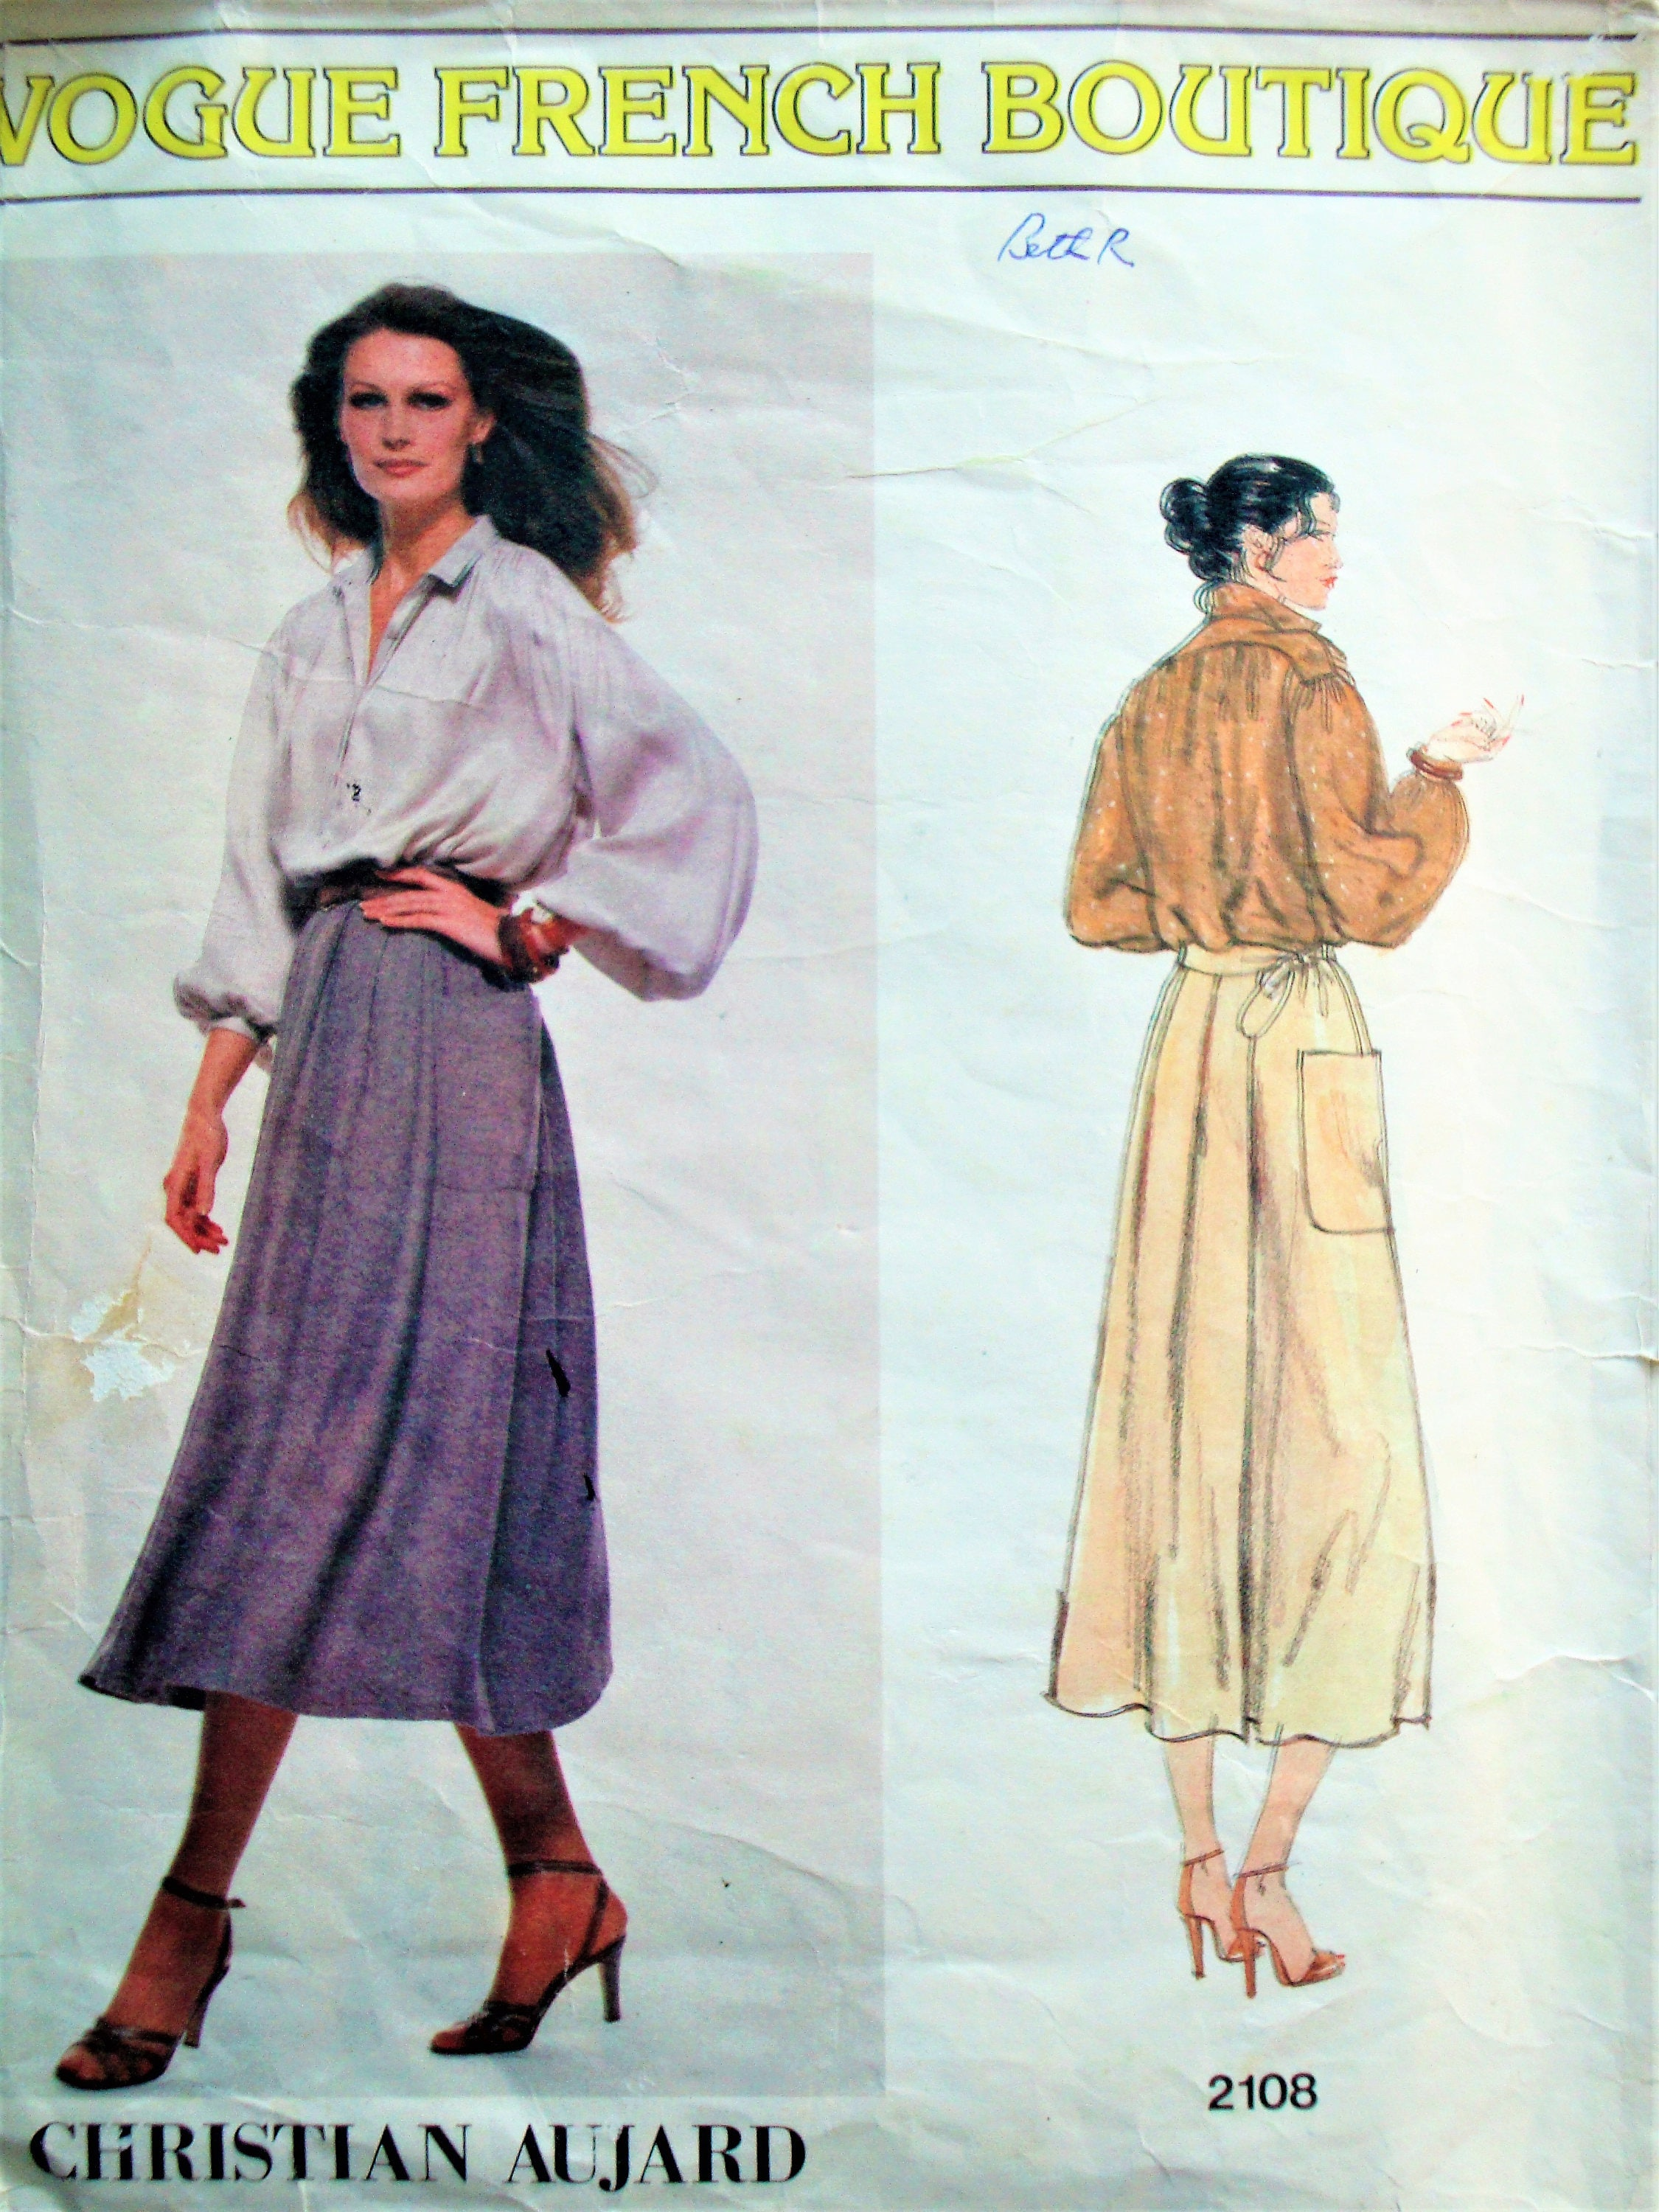 Vintage vogue french boutique sewing pattern no 2108 size 14 details vogue french boutique sewing pattern jeuxipadfo Image collections